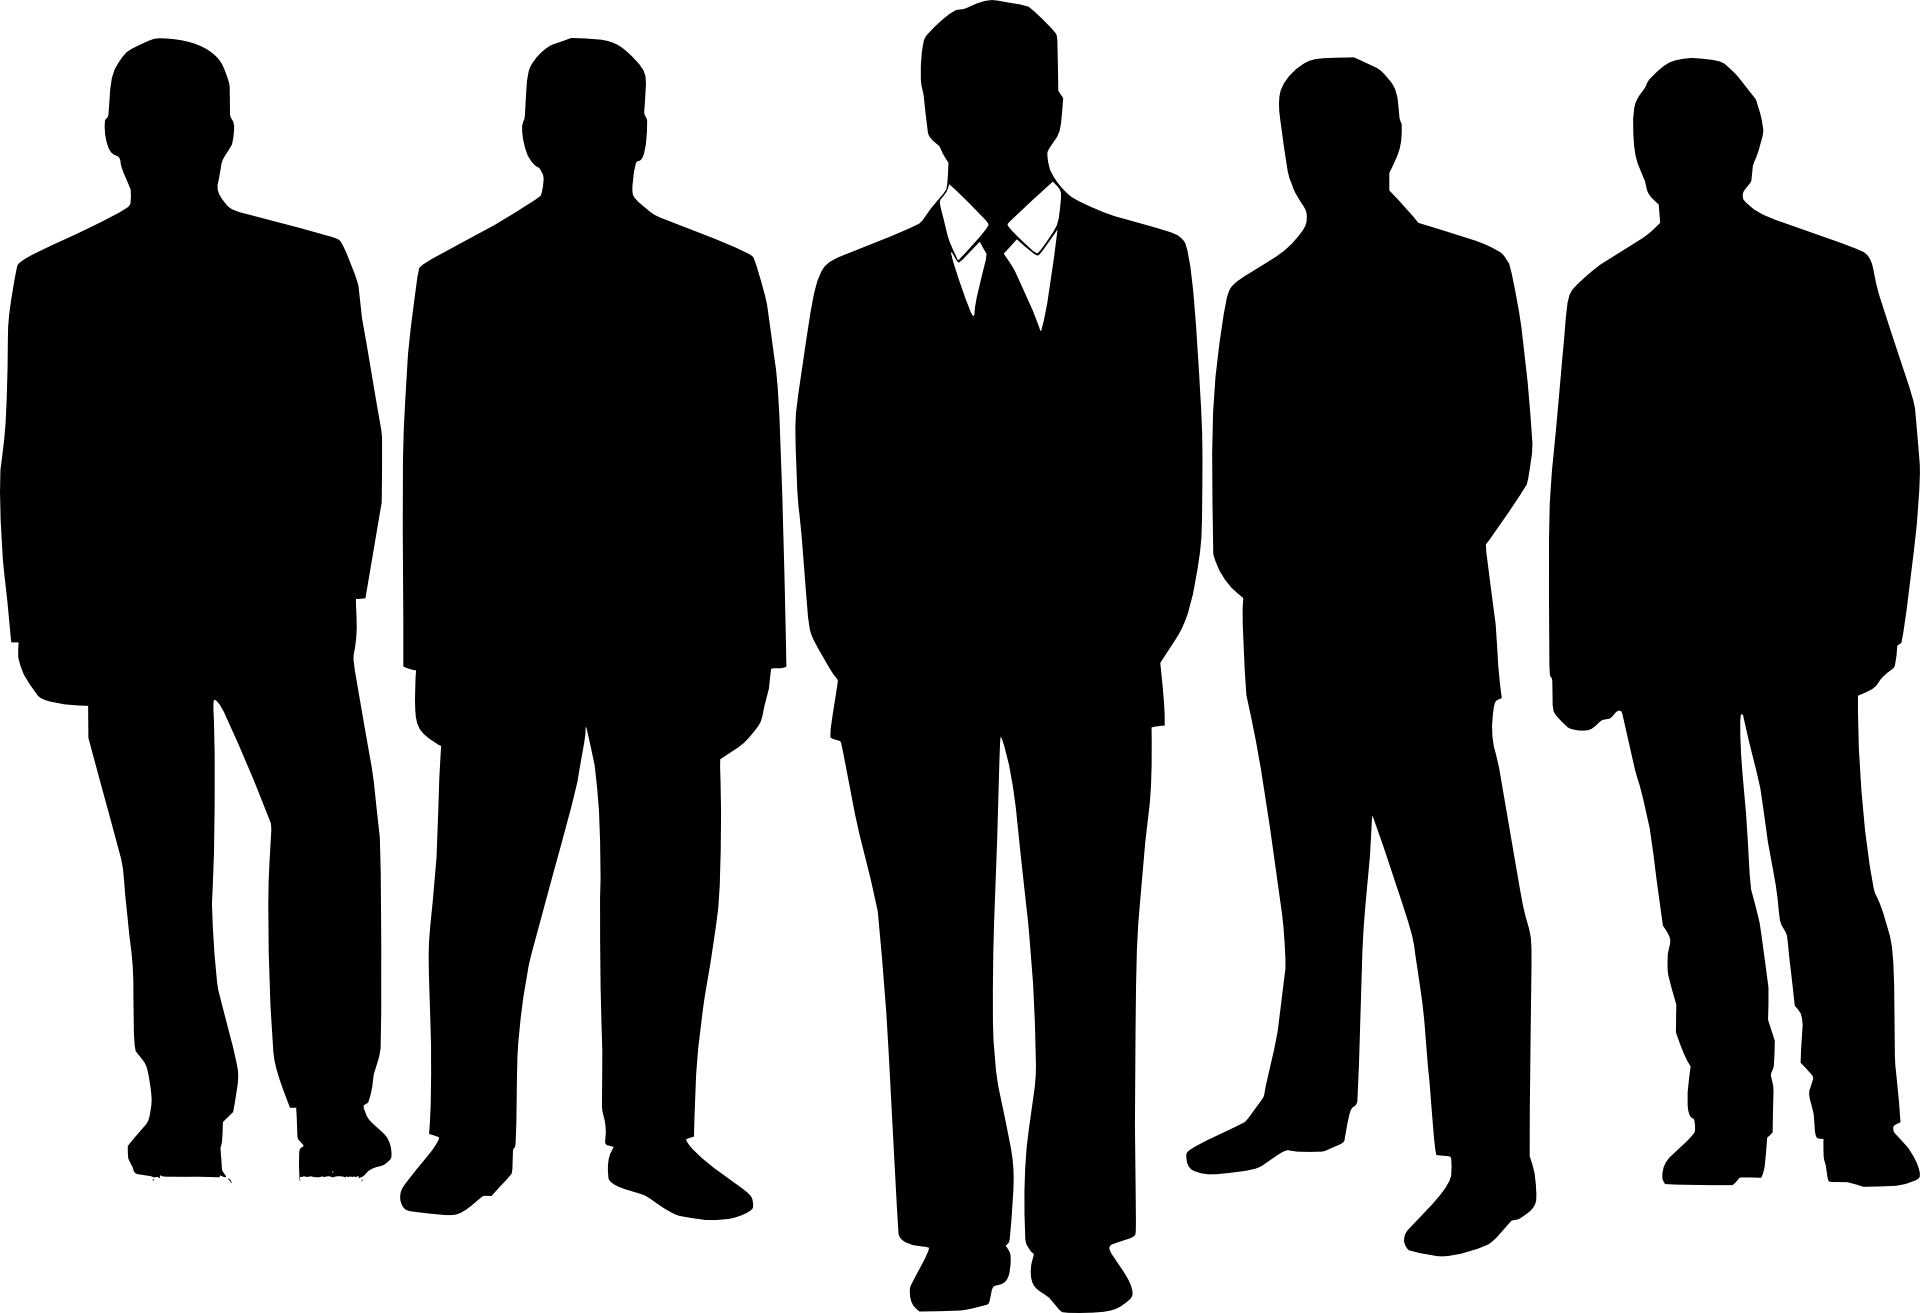 Shaow clipart business person People Art Free Clip Silhouette